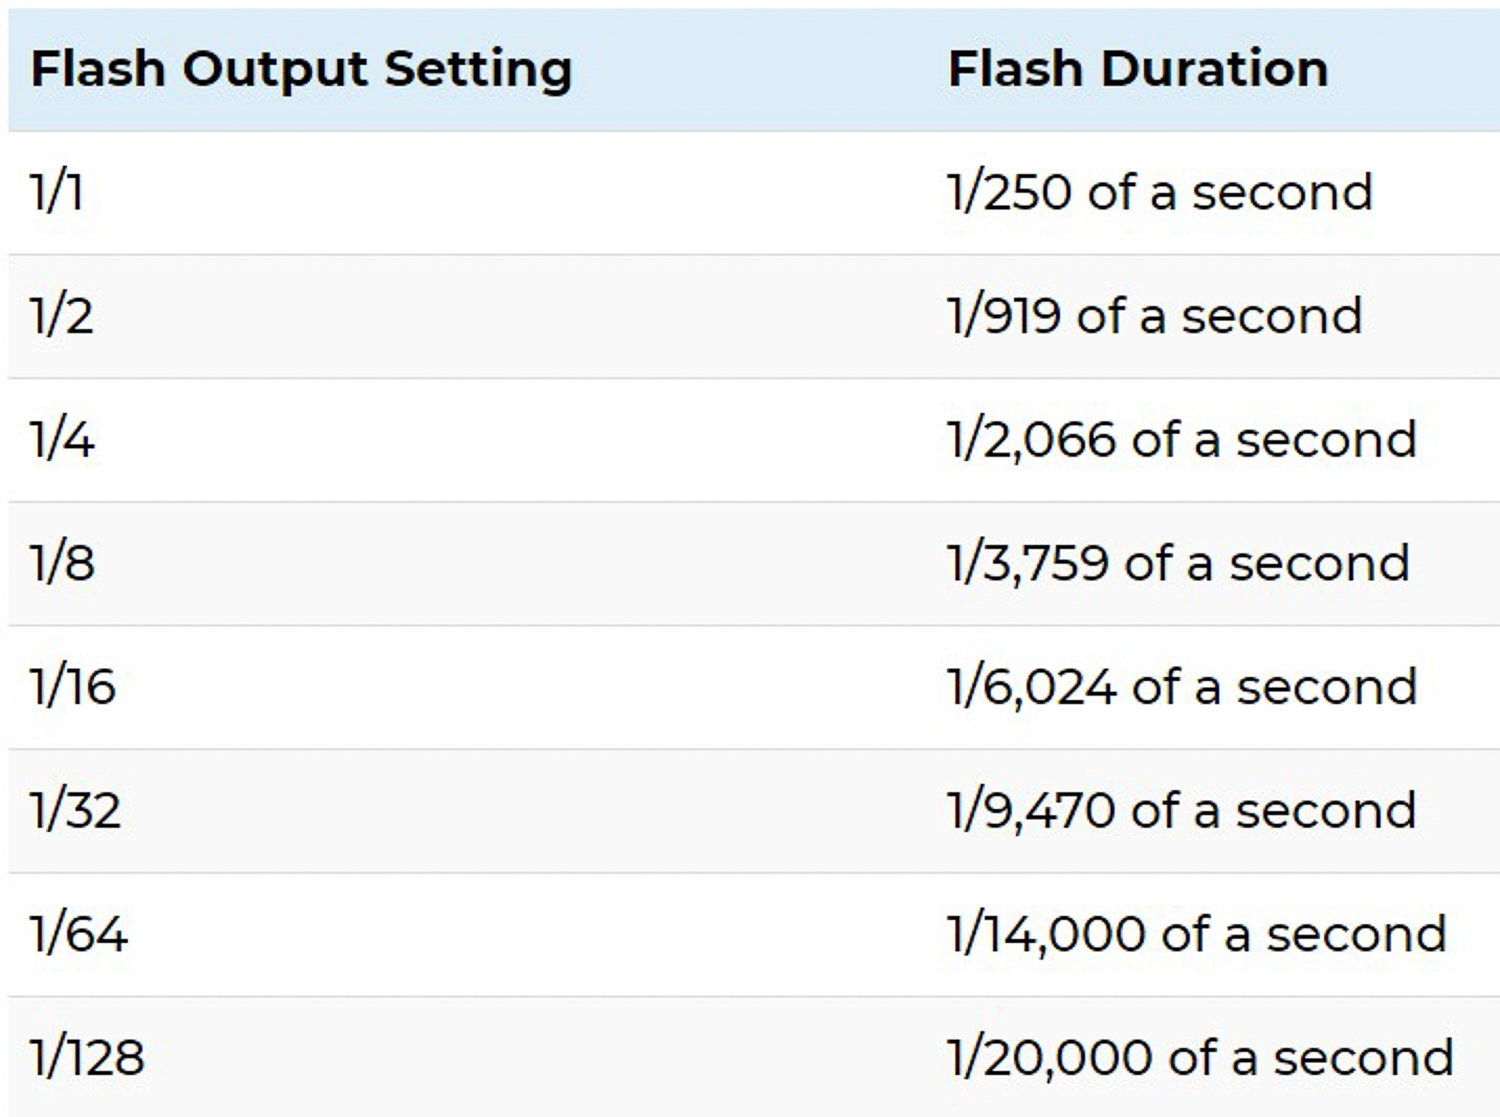 Flash duration table - Types of Photography that go Beyond the Scope of Human Vision